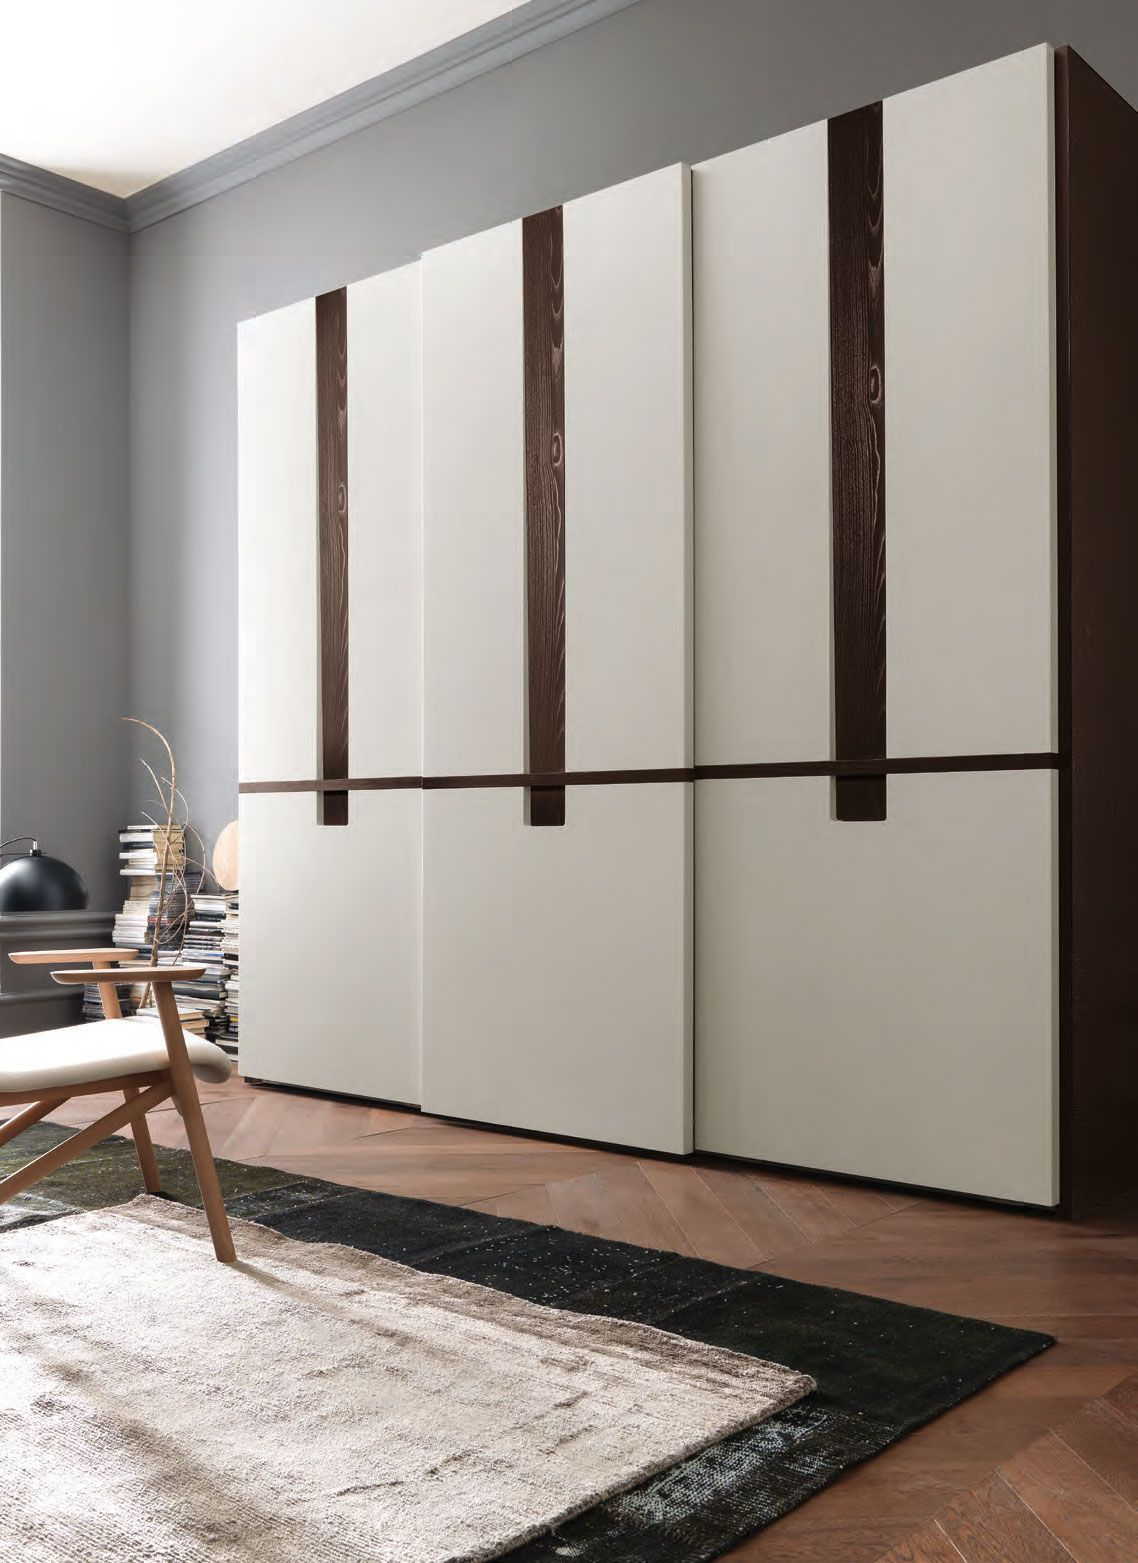 Bedroom wardrobe designs - 35 Modern Wardrobe Furniture Designs